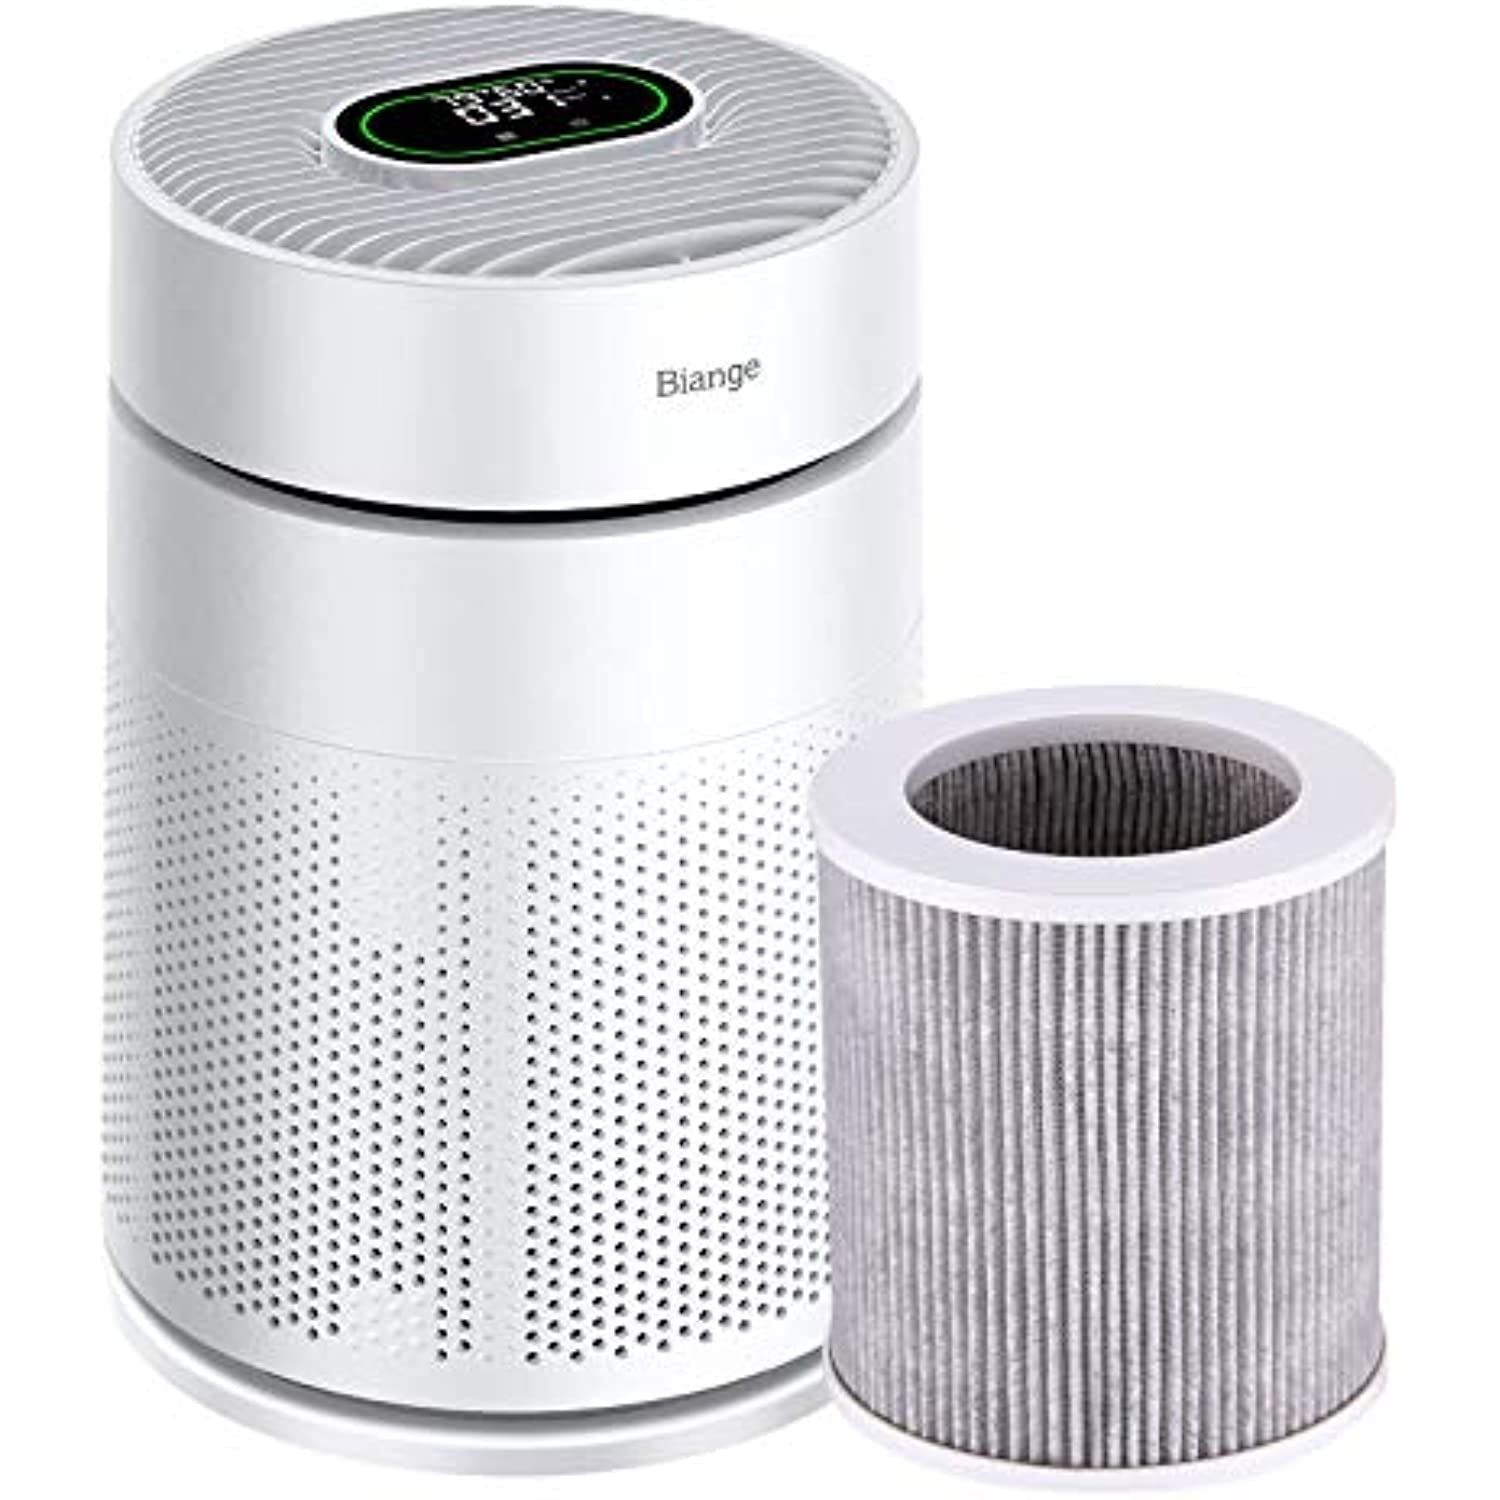 Biange Air Purifiers for Home Large Room with Air Quality Sensor, with Extra Filter replacement, KQ-26